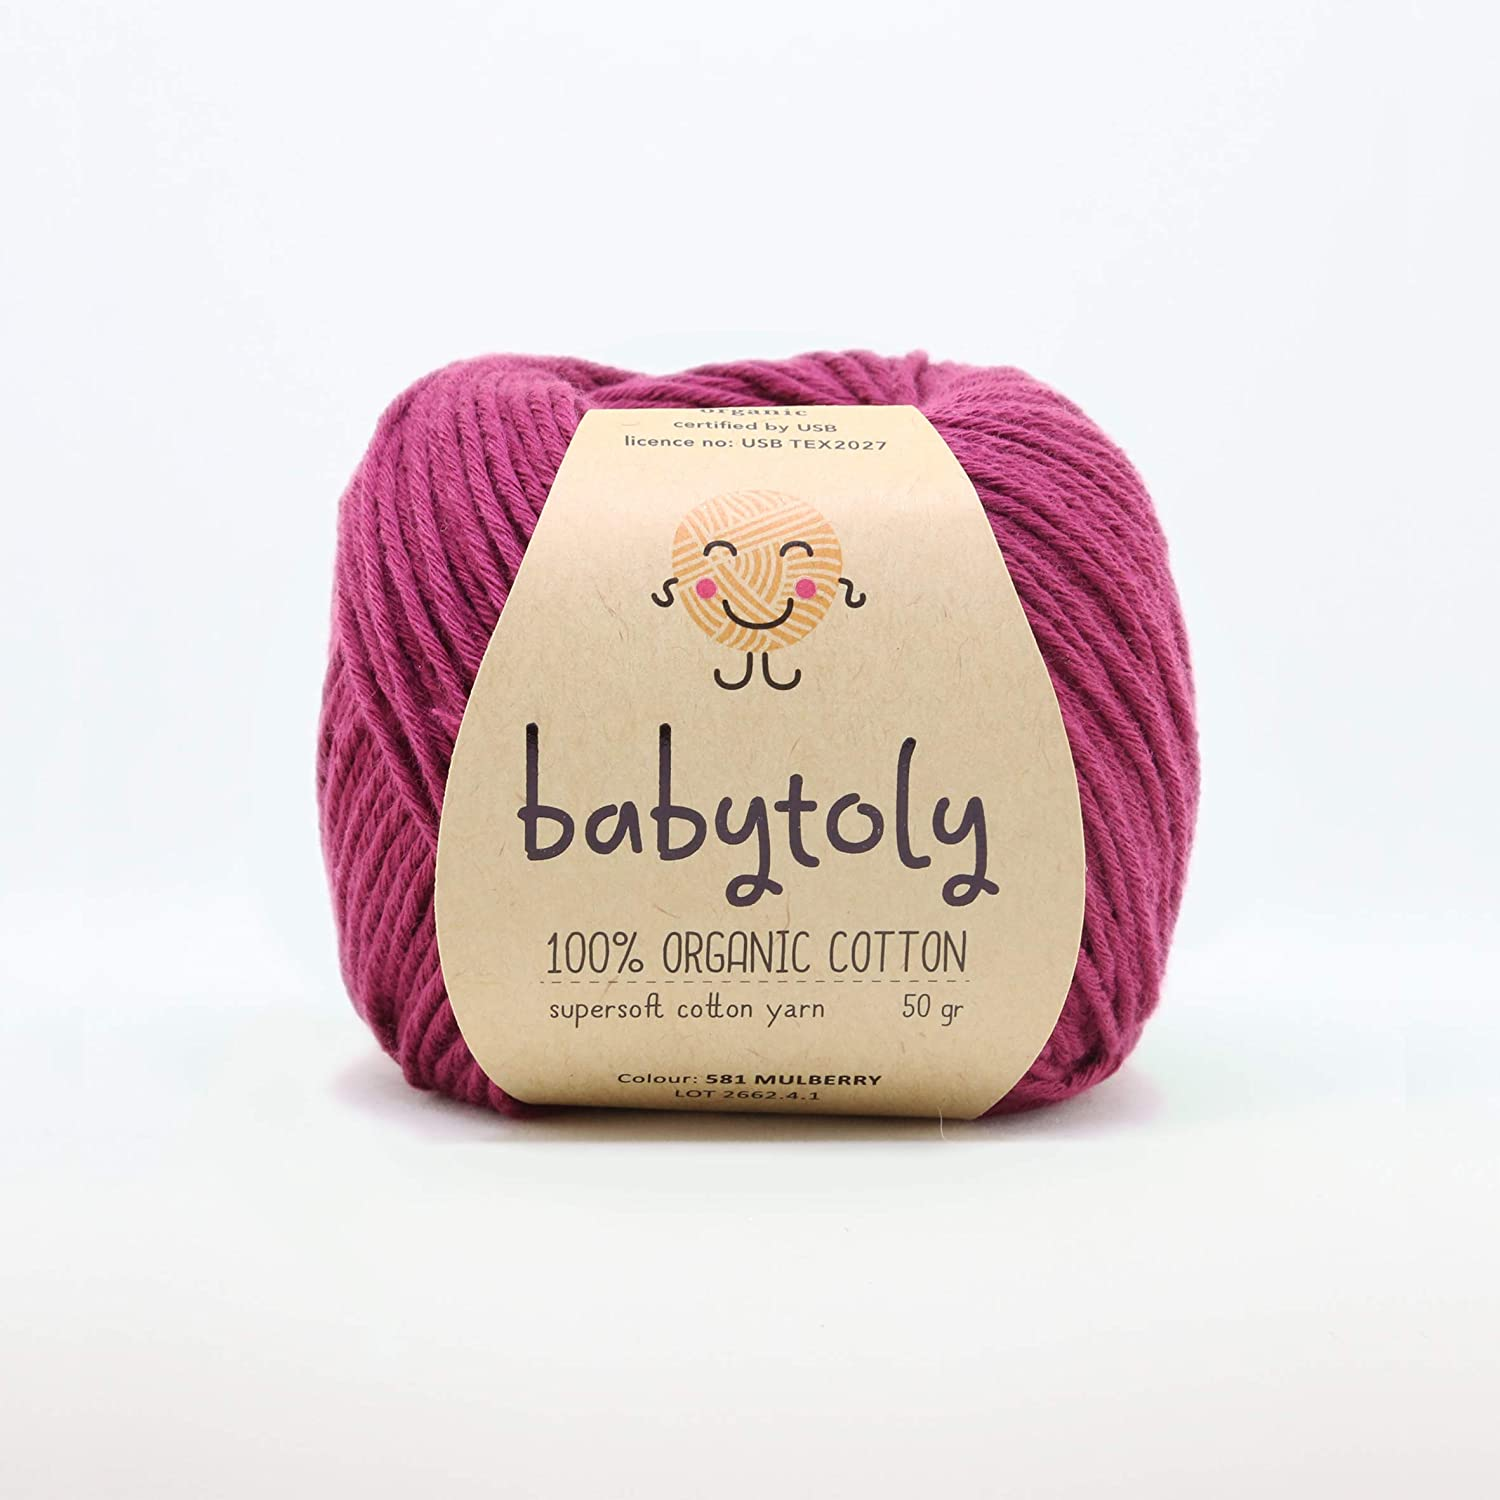 Yellow 27 Organic Egyptian Cotton 5-Pack #11 Off Wht 2 Pink 20 Mint 9 GOTS Certified Lt Denim 41 See More 5-Pks in our Organic Section!